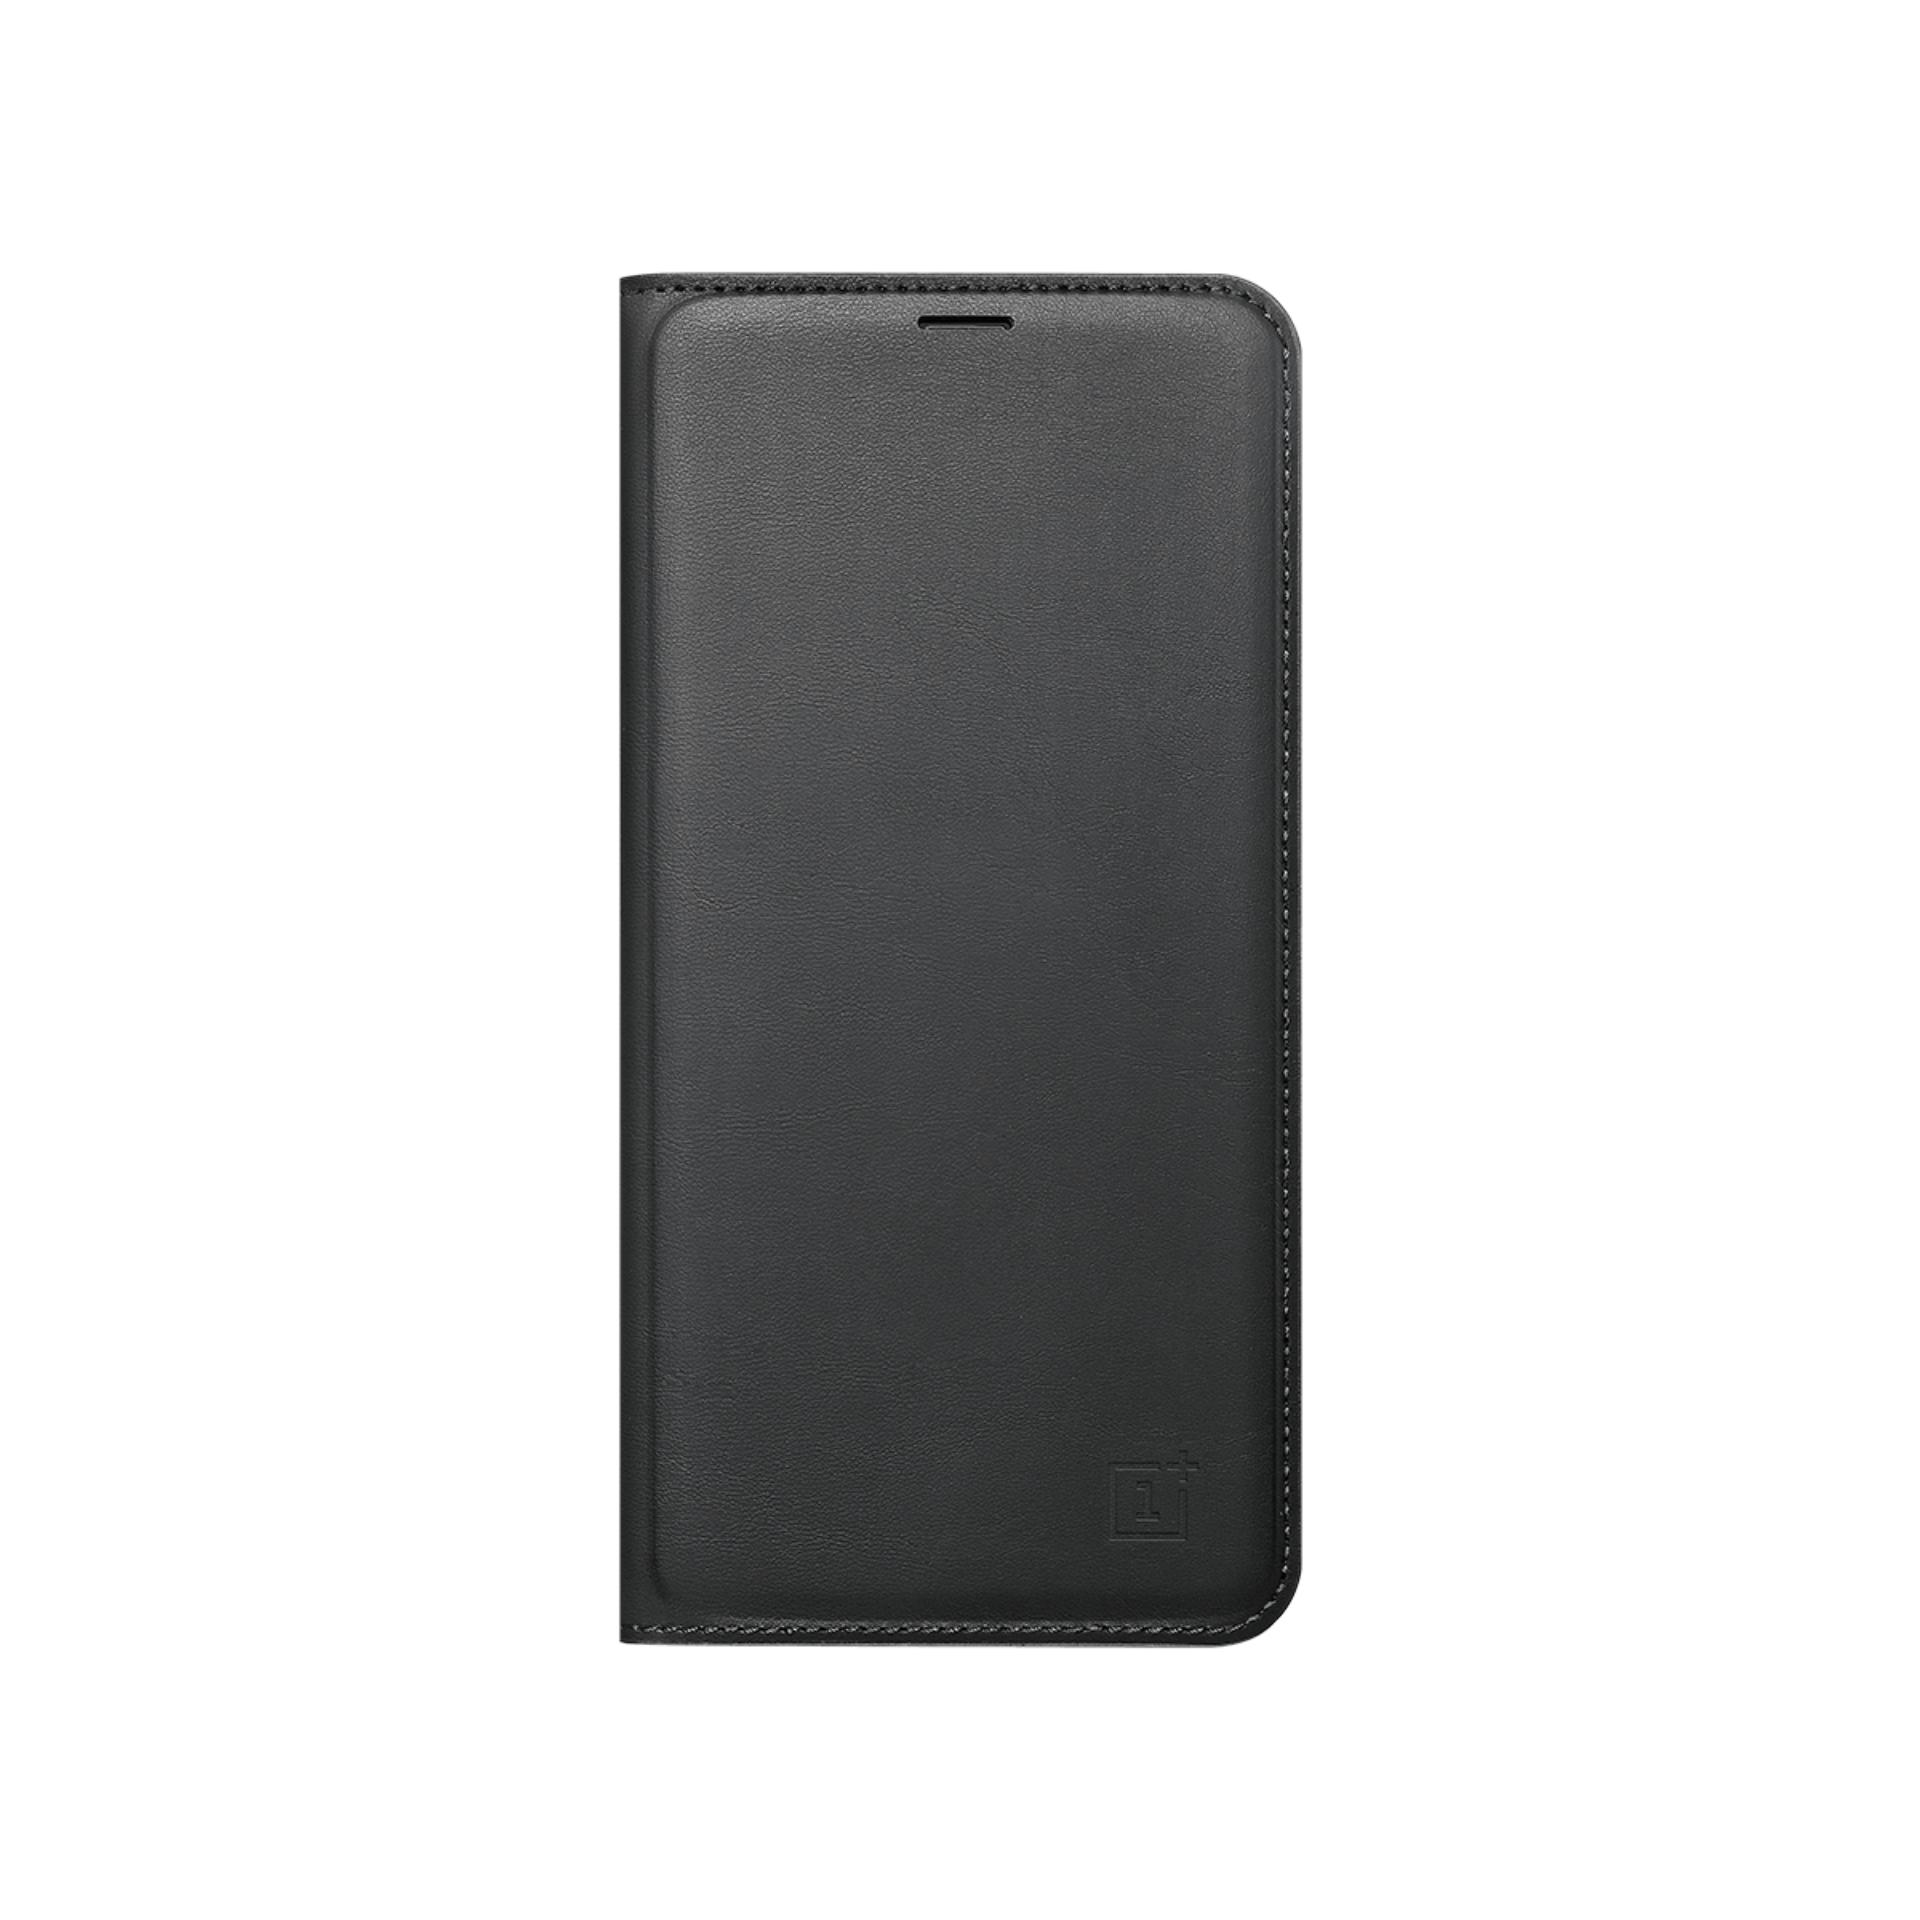 Low Price Oneplus 5T Flip Cover Black